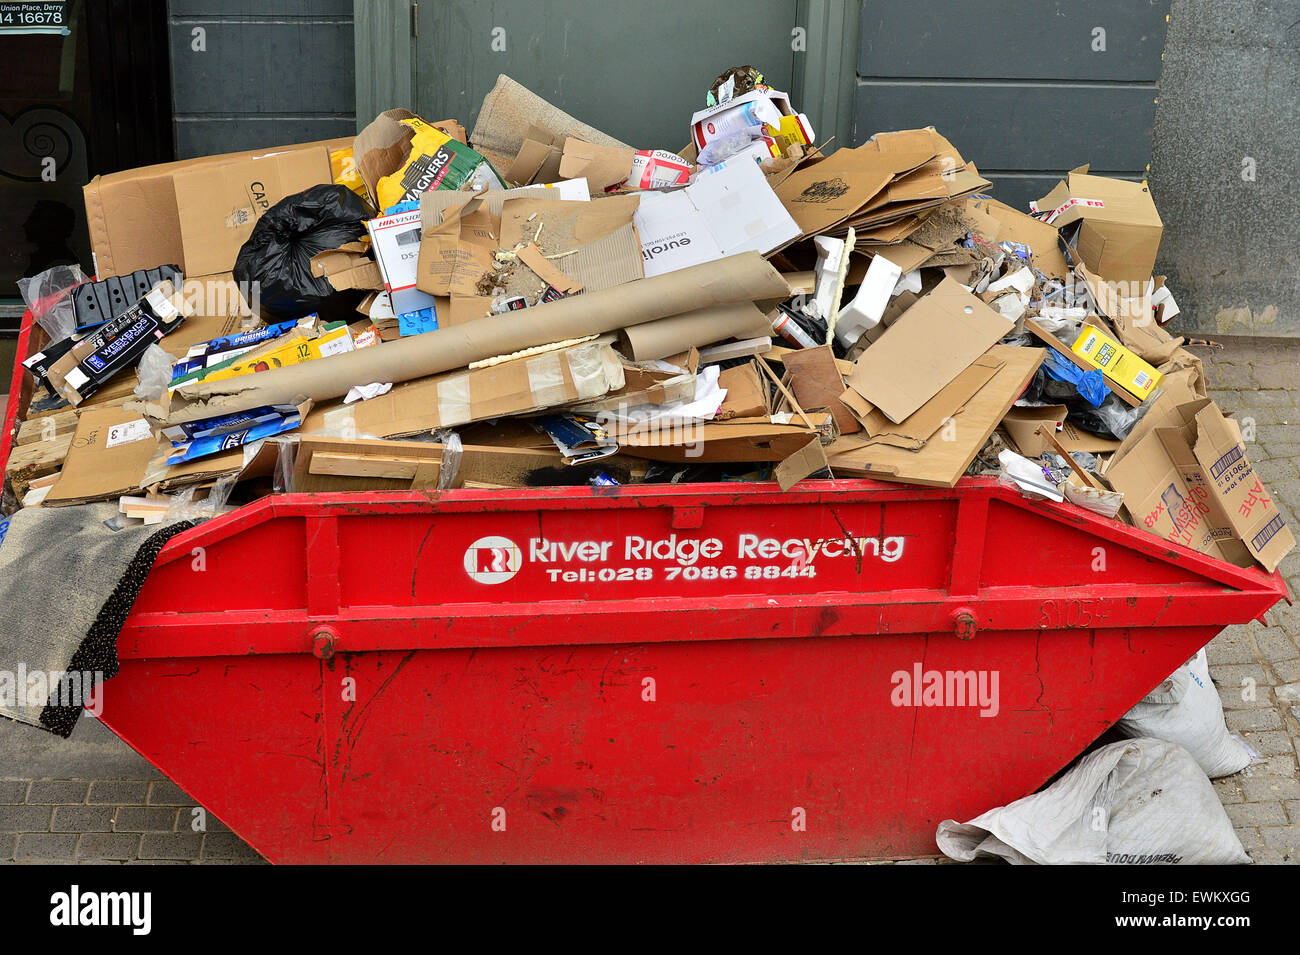 Red recycling skip overflowing with cardboard in Londonderry (Derry), Northern Ireland - Stock Image